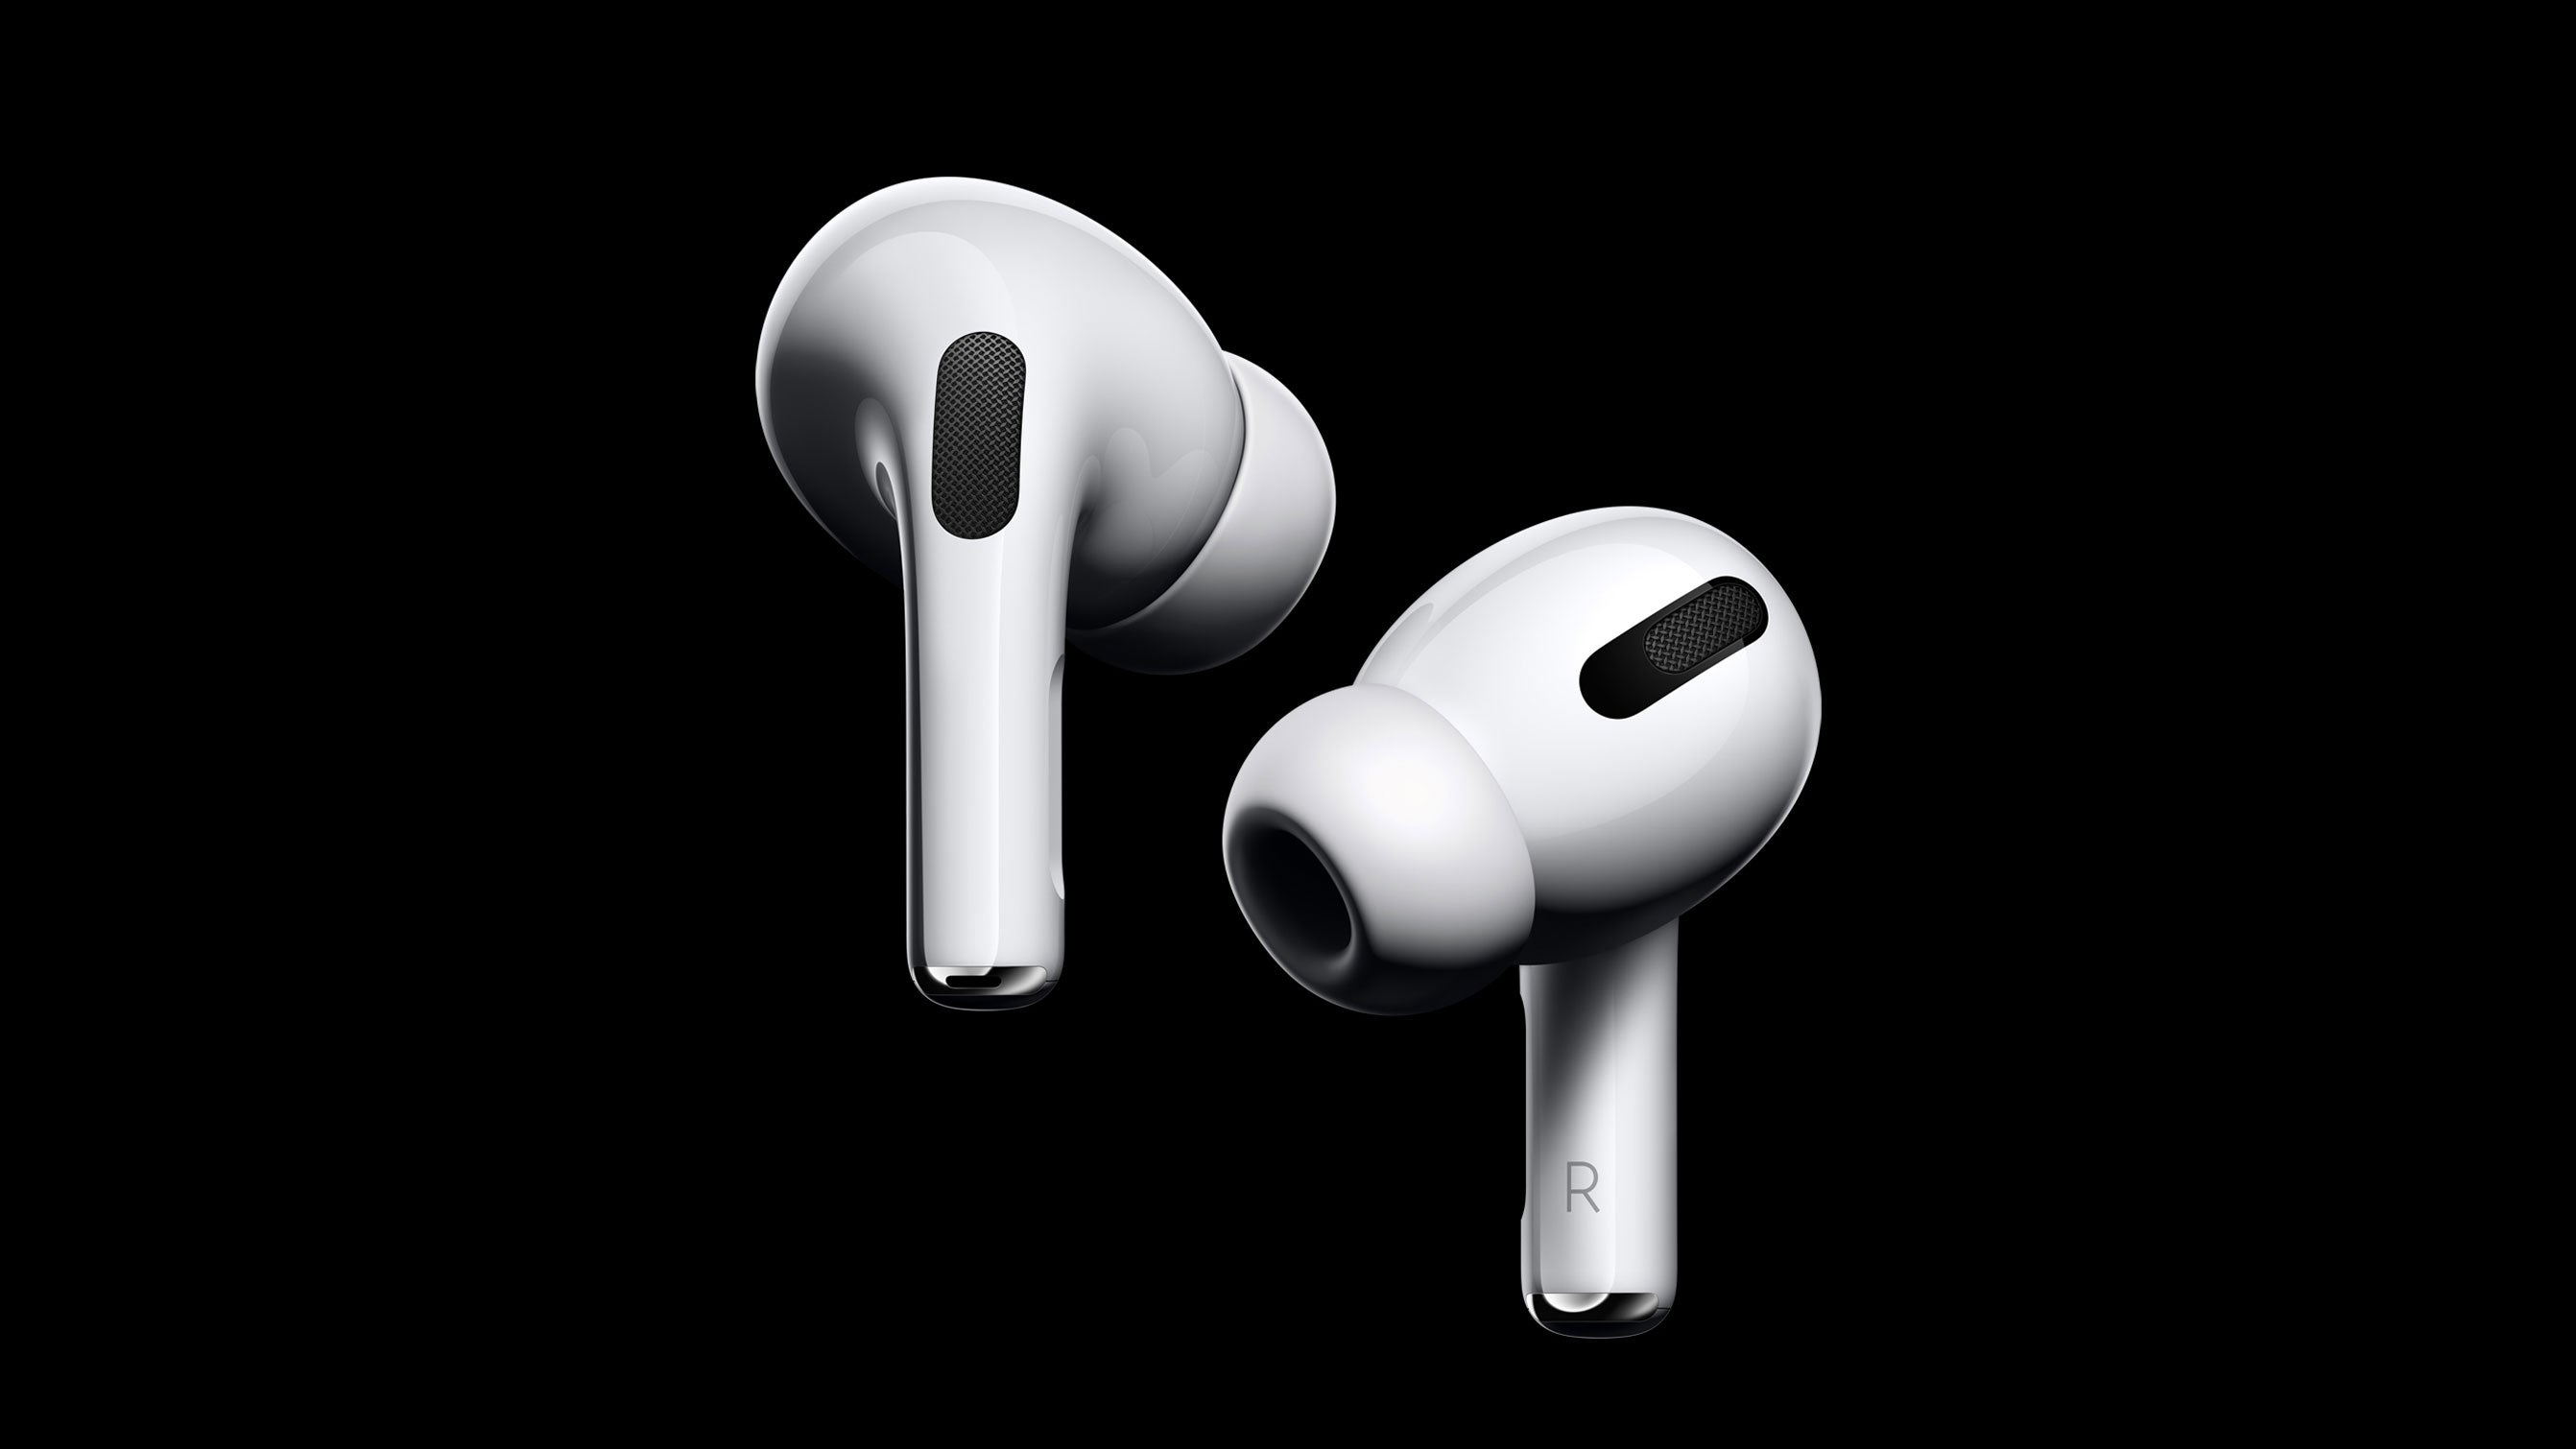 Apple Announces AirPods Pro With Noise-Cancellation, Coming On October 30